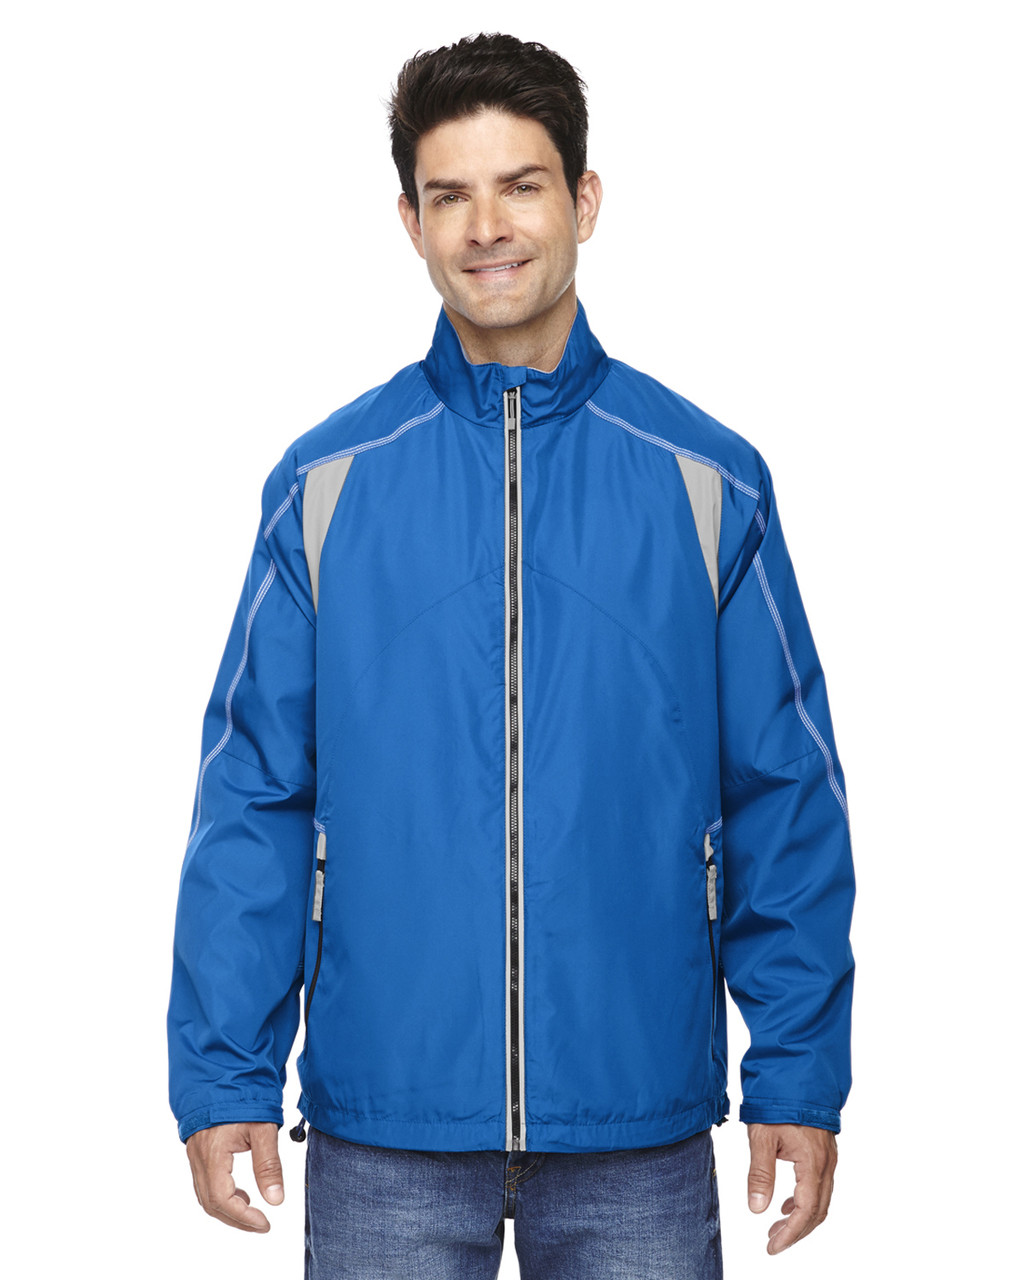 Nautical Blue - 88155 North End Men's Lightweight Colour-Block Jacket | Blankclothing.ca